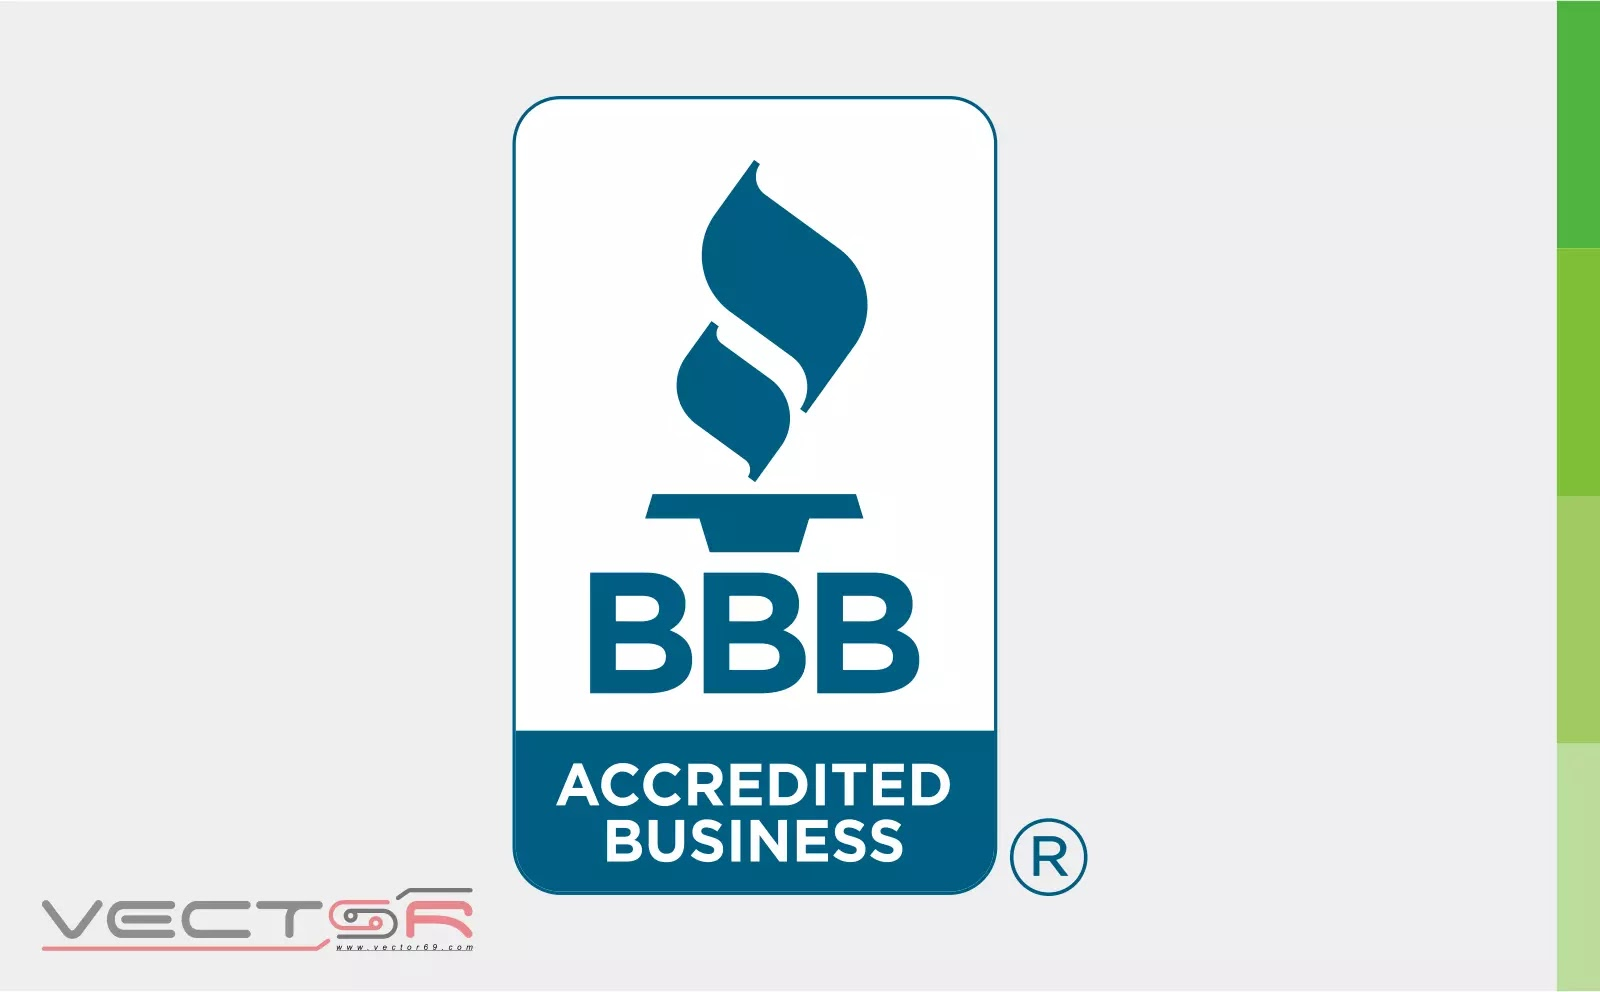 BBB Accredited Business Seal - Download Vector File CDR (CorelDraw)